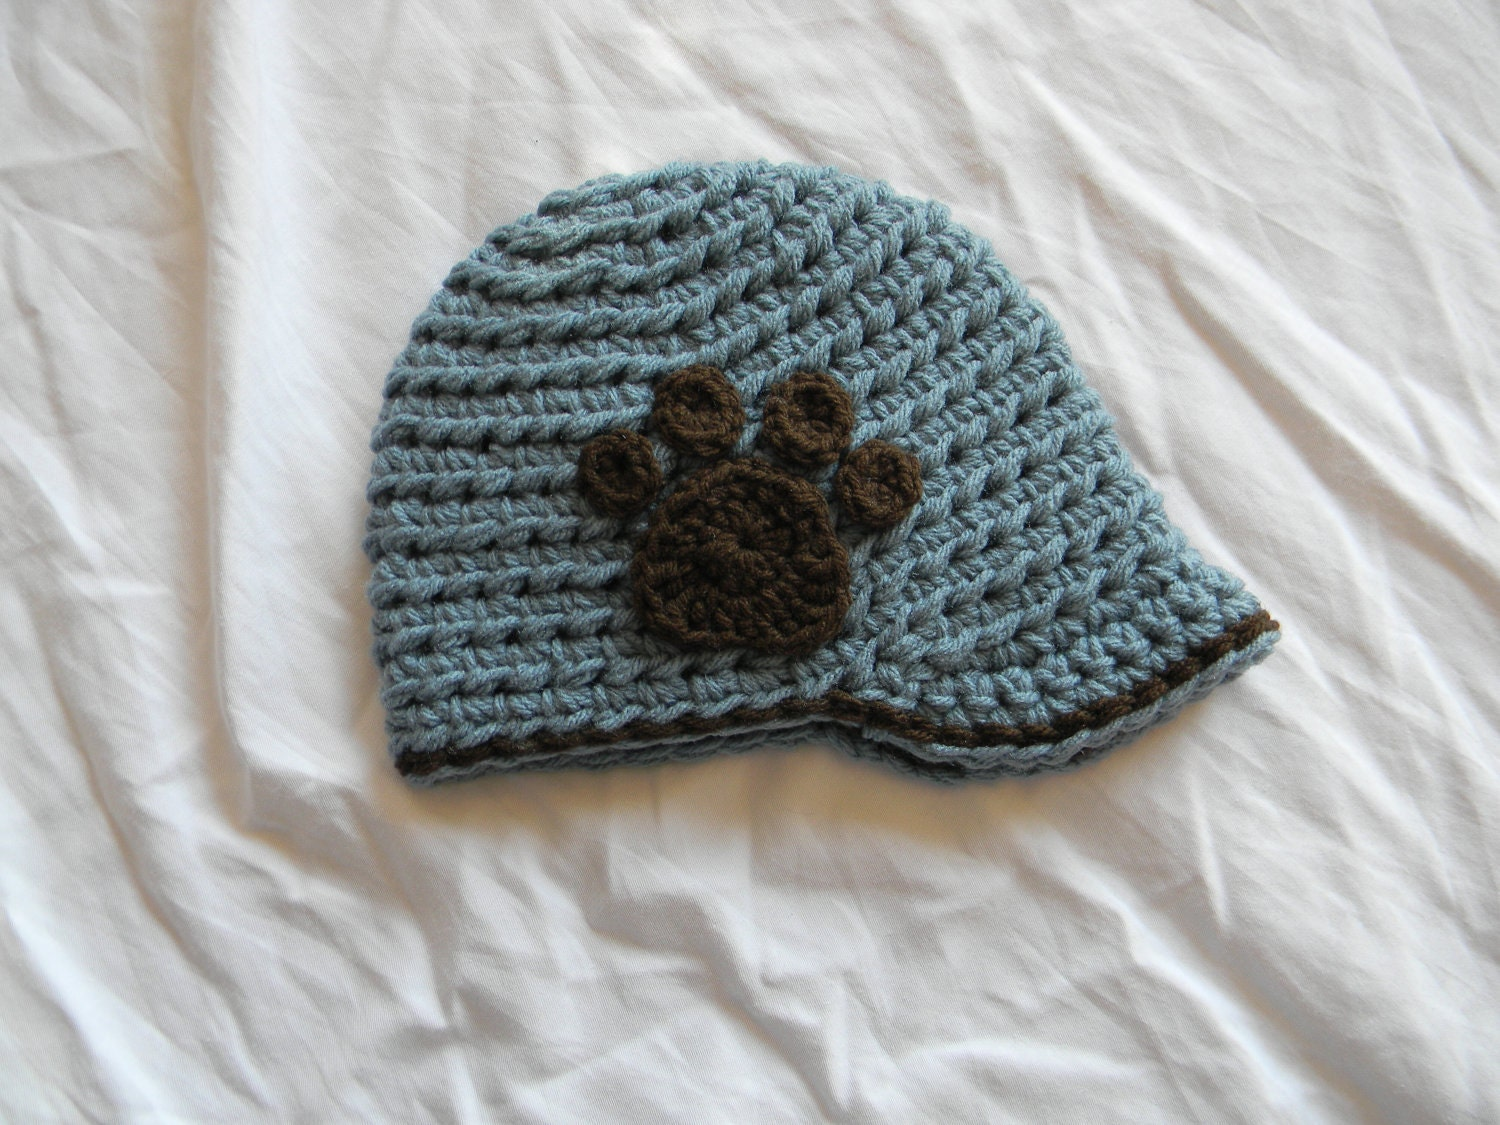 Free Crochet Pattern For Paw Print : CROCHET PATTERN Inside Track Brimmed Cap with Paw Print or